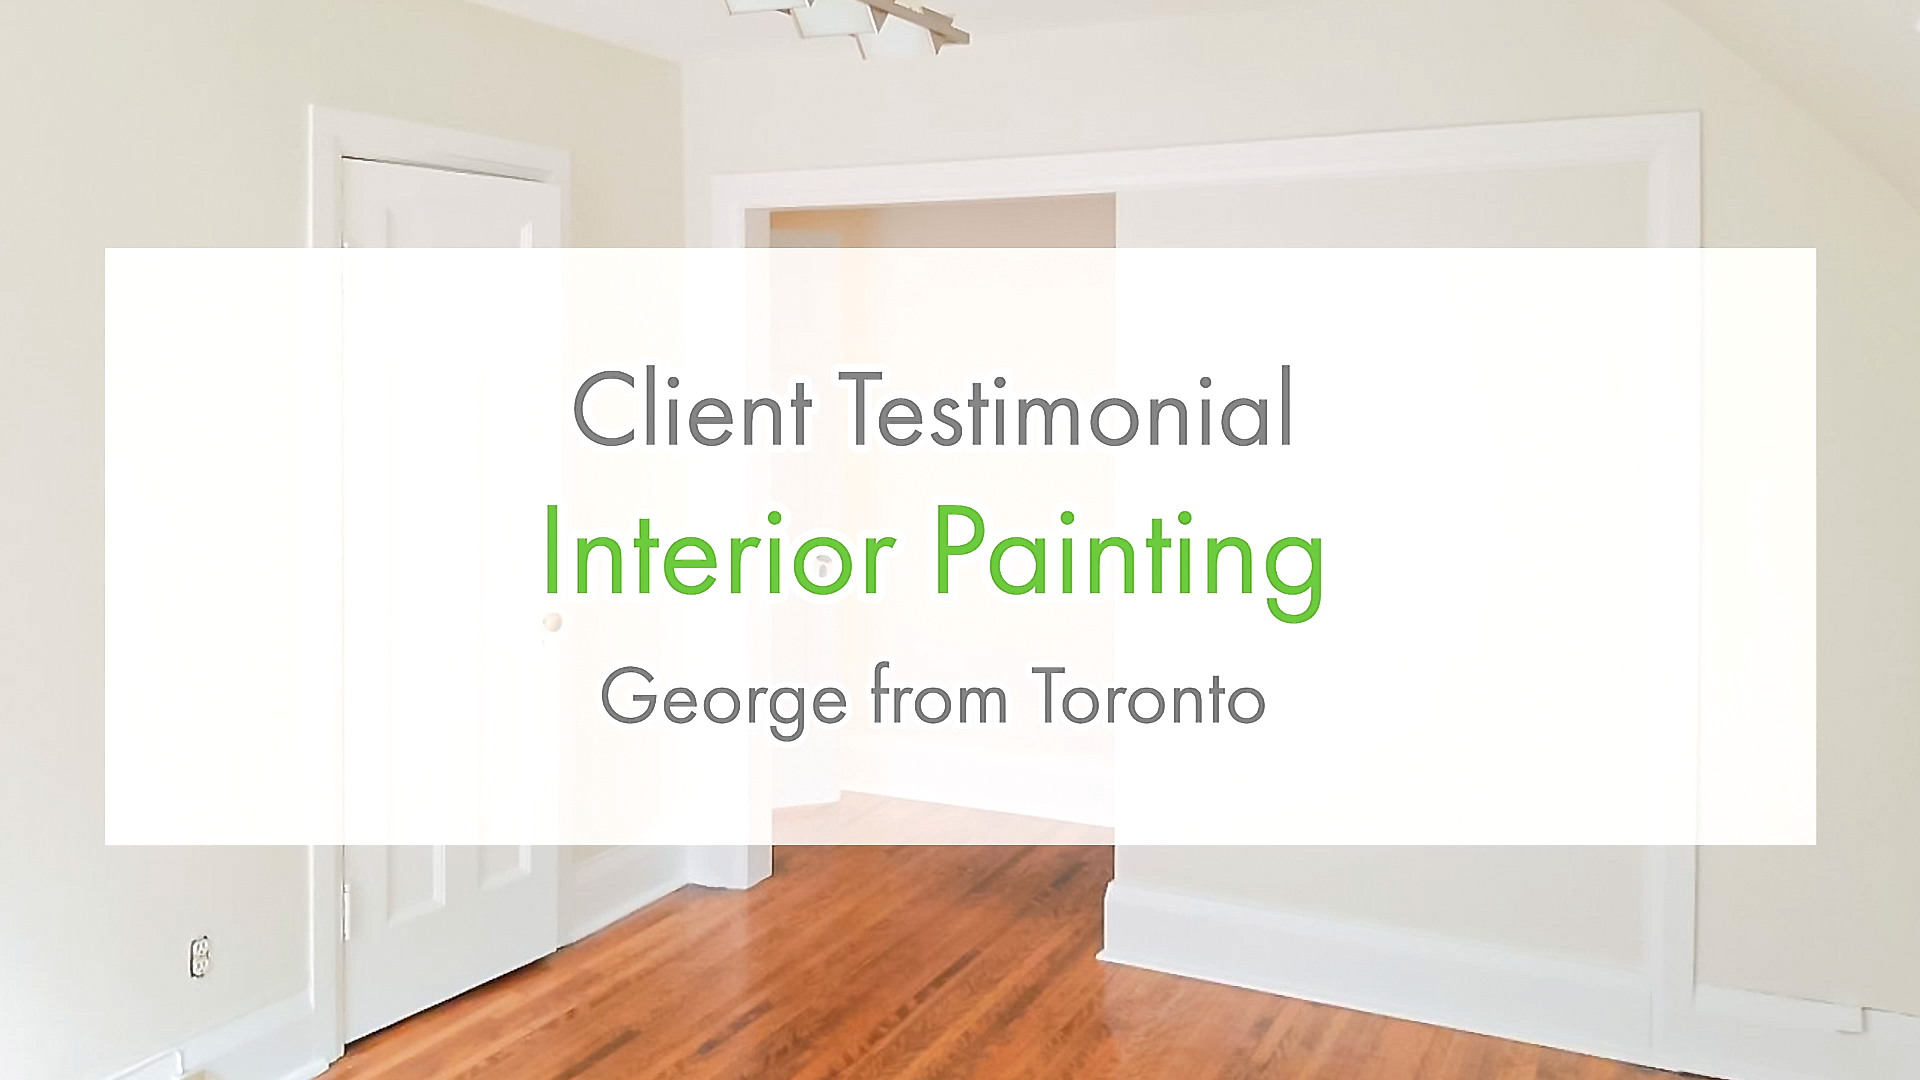 Glad to service you George! 😁  Get featured on our next testimonial!  📞 416-494-9095   📨 Email us at Sales@HomePaintersToronto.com   🌐 www.HomePaintersToronto.com & www.HomePaintersOttawa.com   #HomeGoals #Testimonial #Interior #homepainters #paint #reno #renovation #Rating #Canada #Toronto #Ottawa #HomeLove #HomeInspo #Review #Client